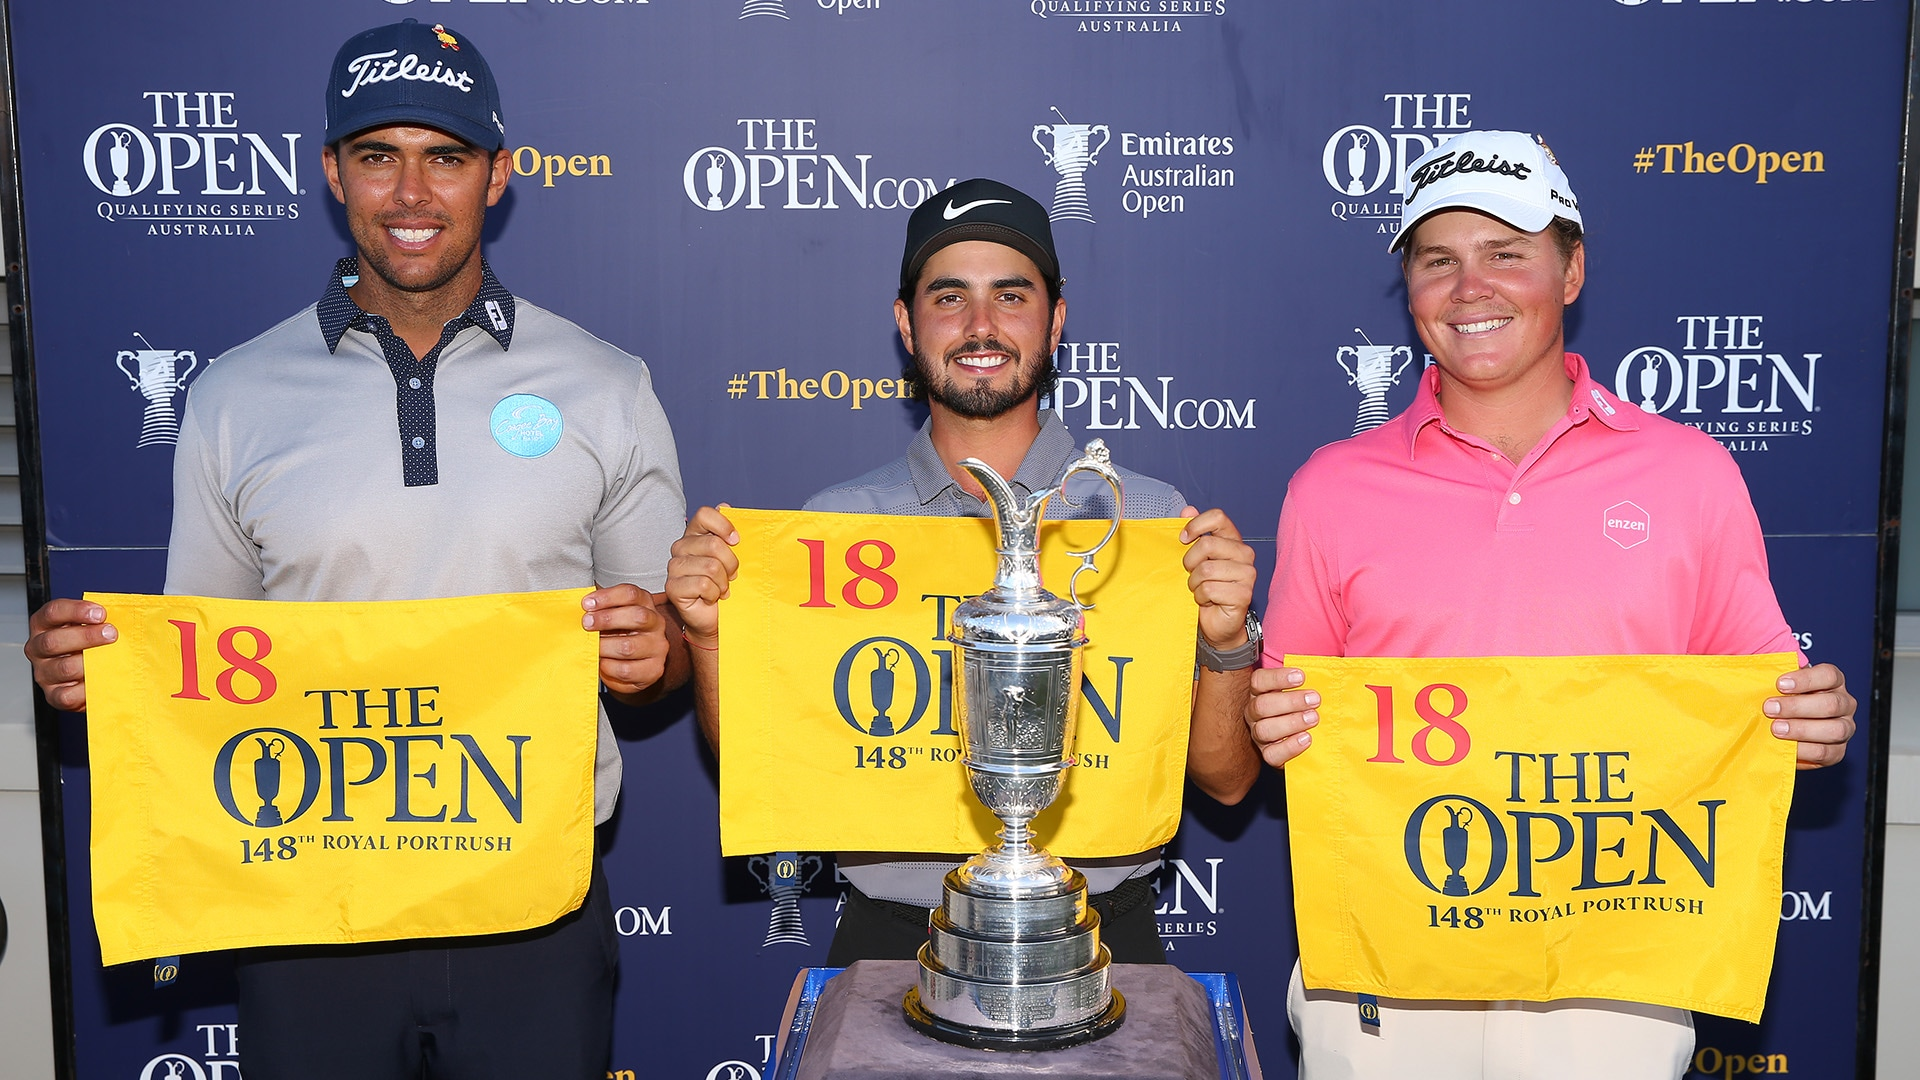 Abraham Ancer is among three qualifiers for the 2019 Open